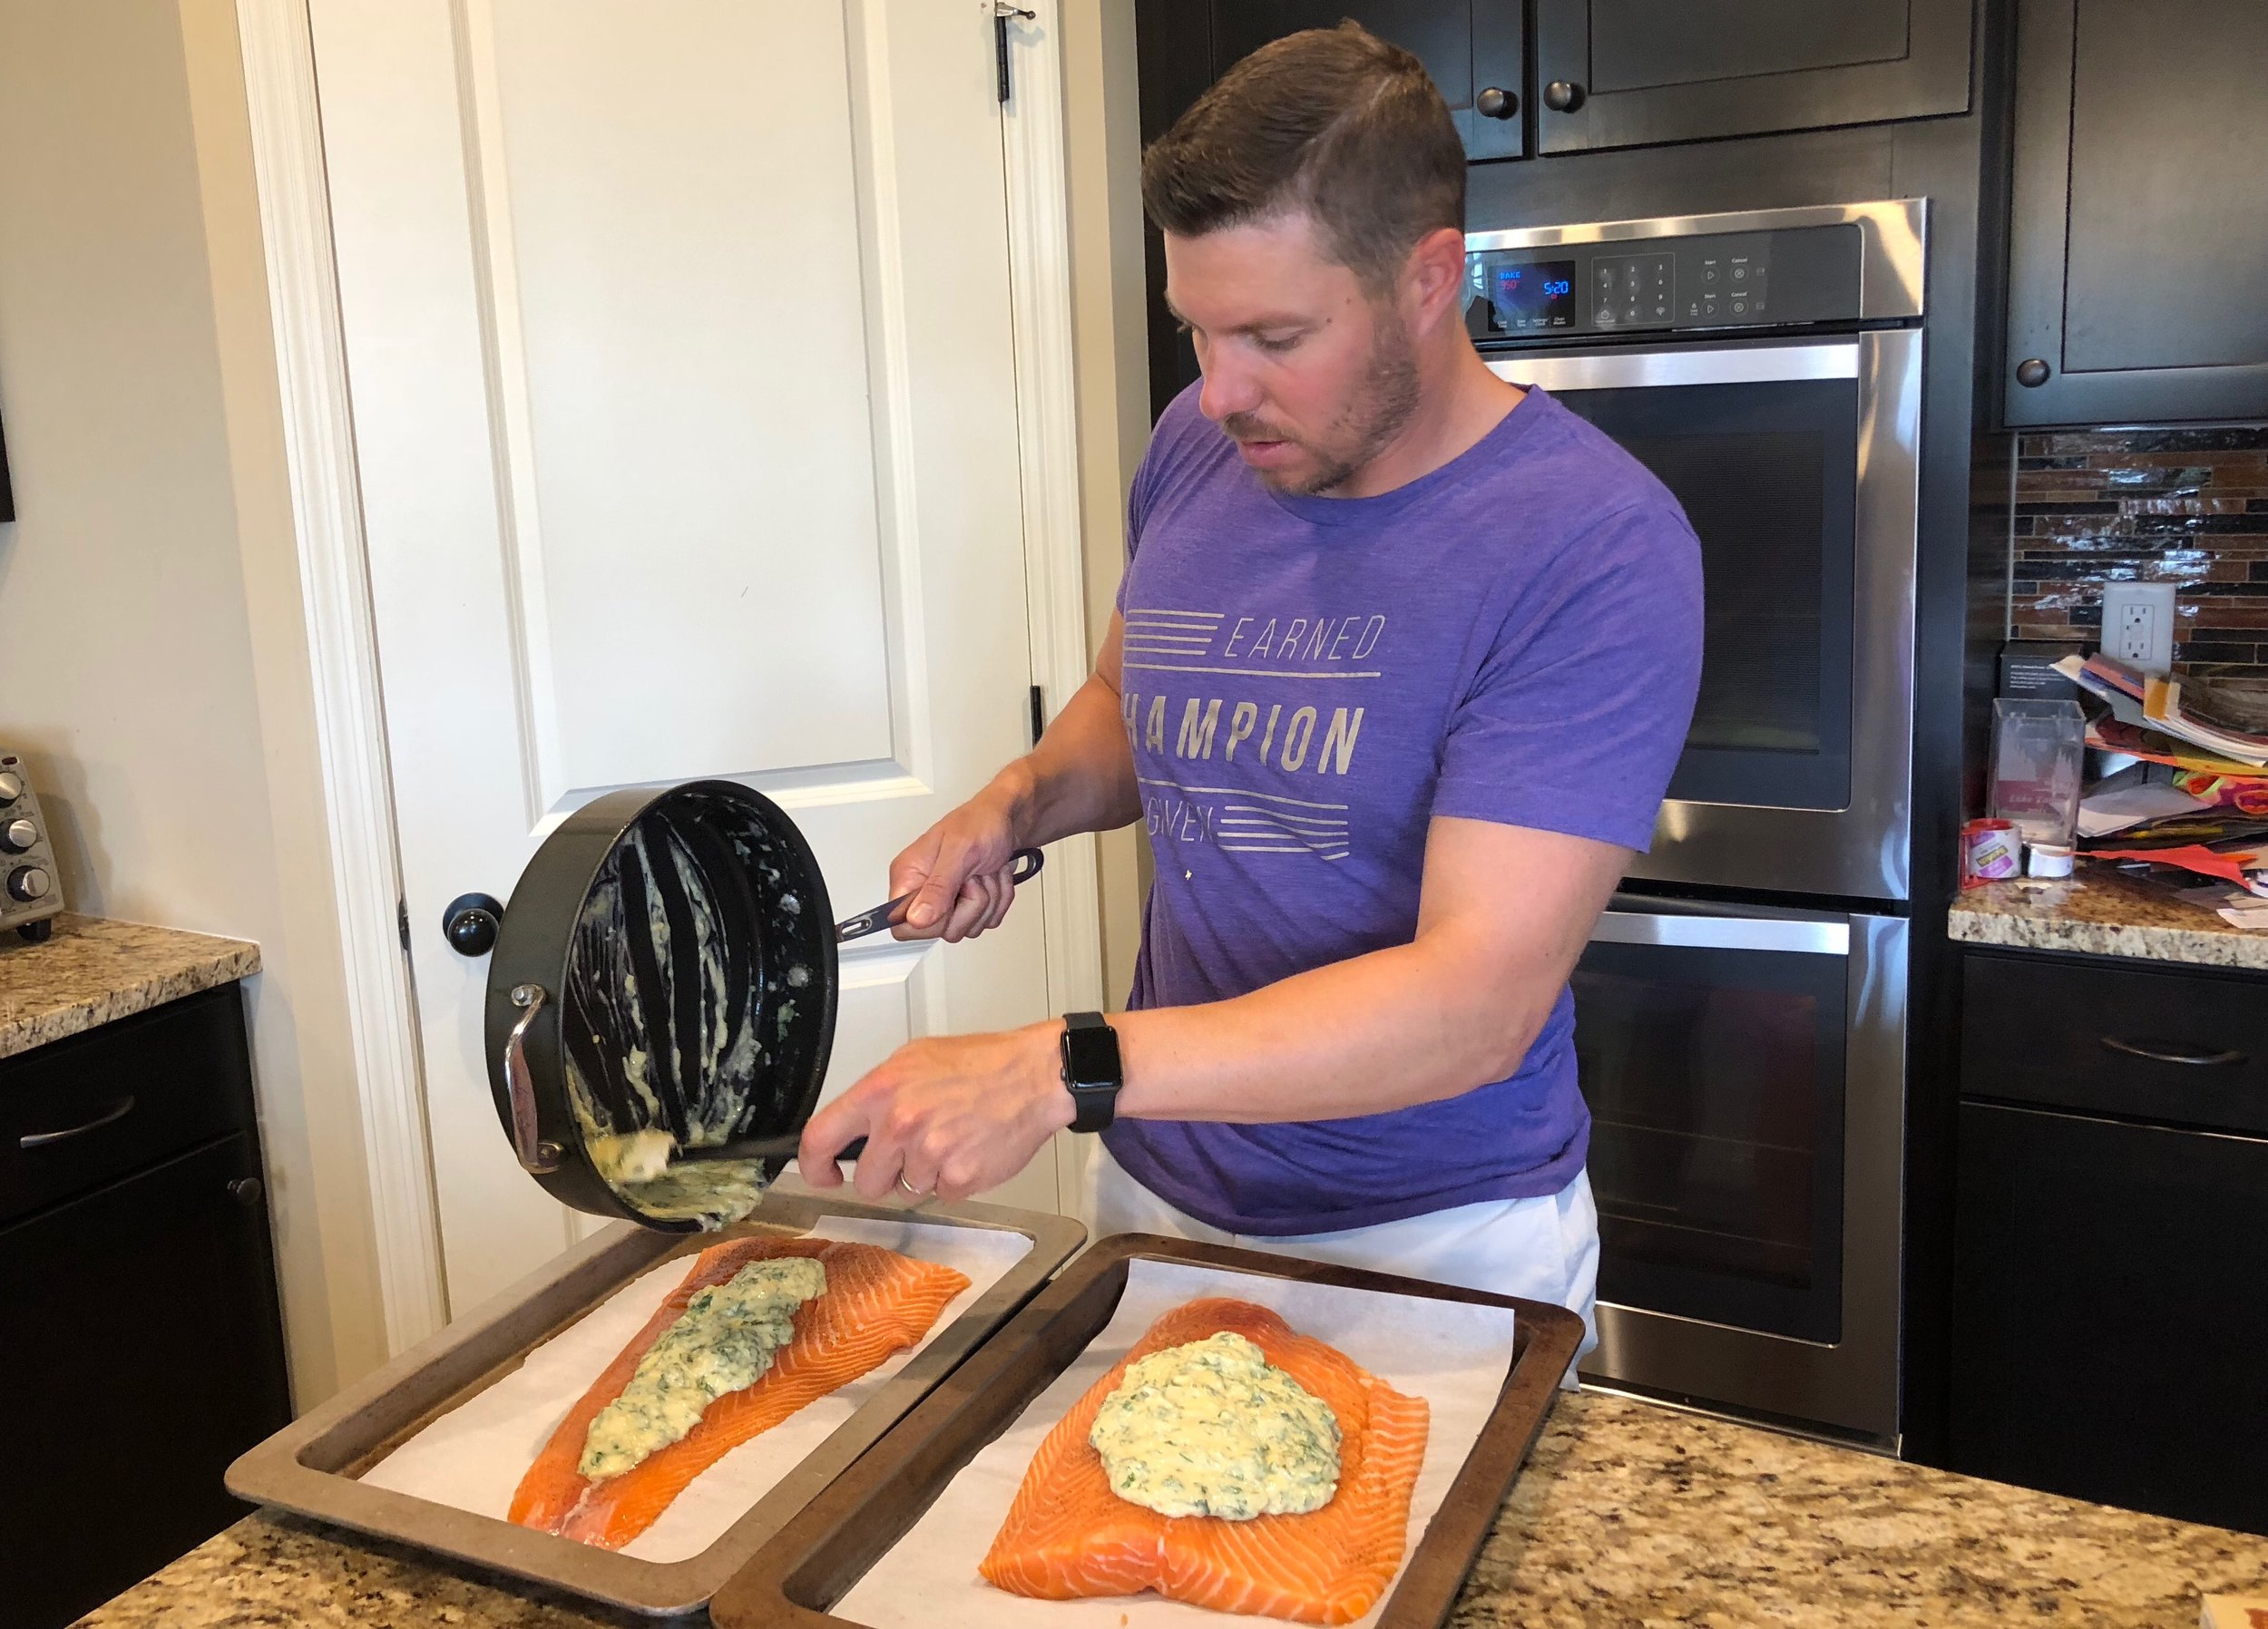 The Keto Dad meal planning keto lifestyle